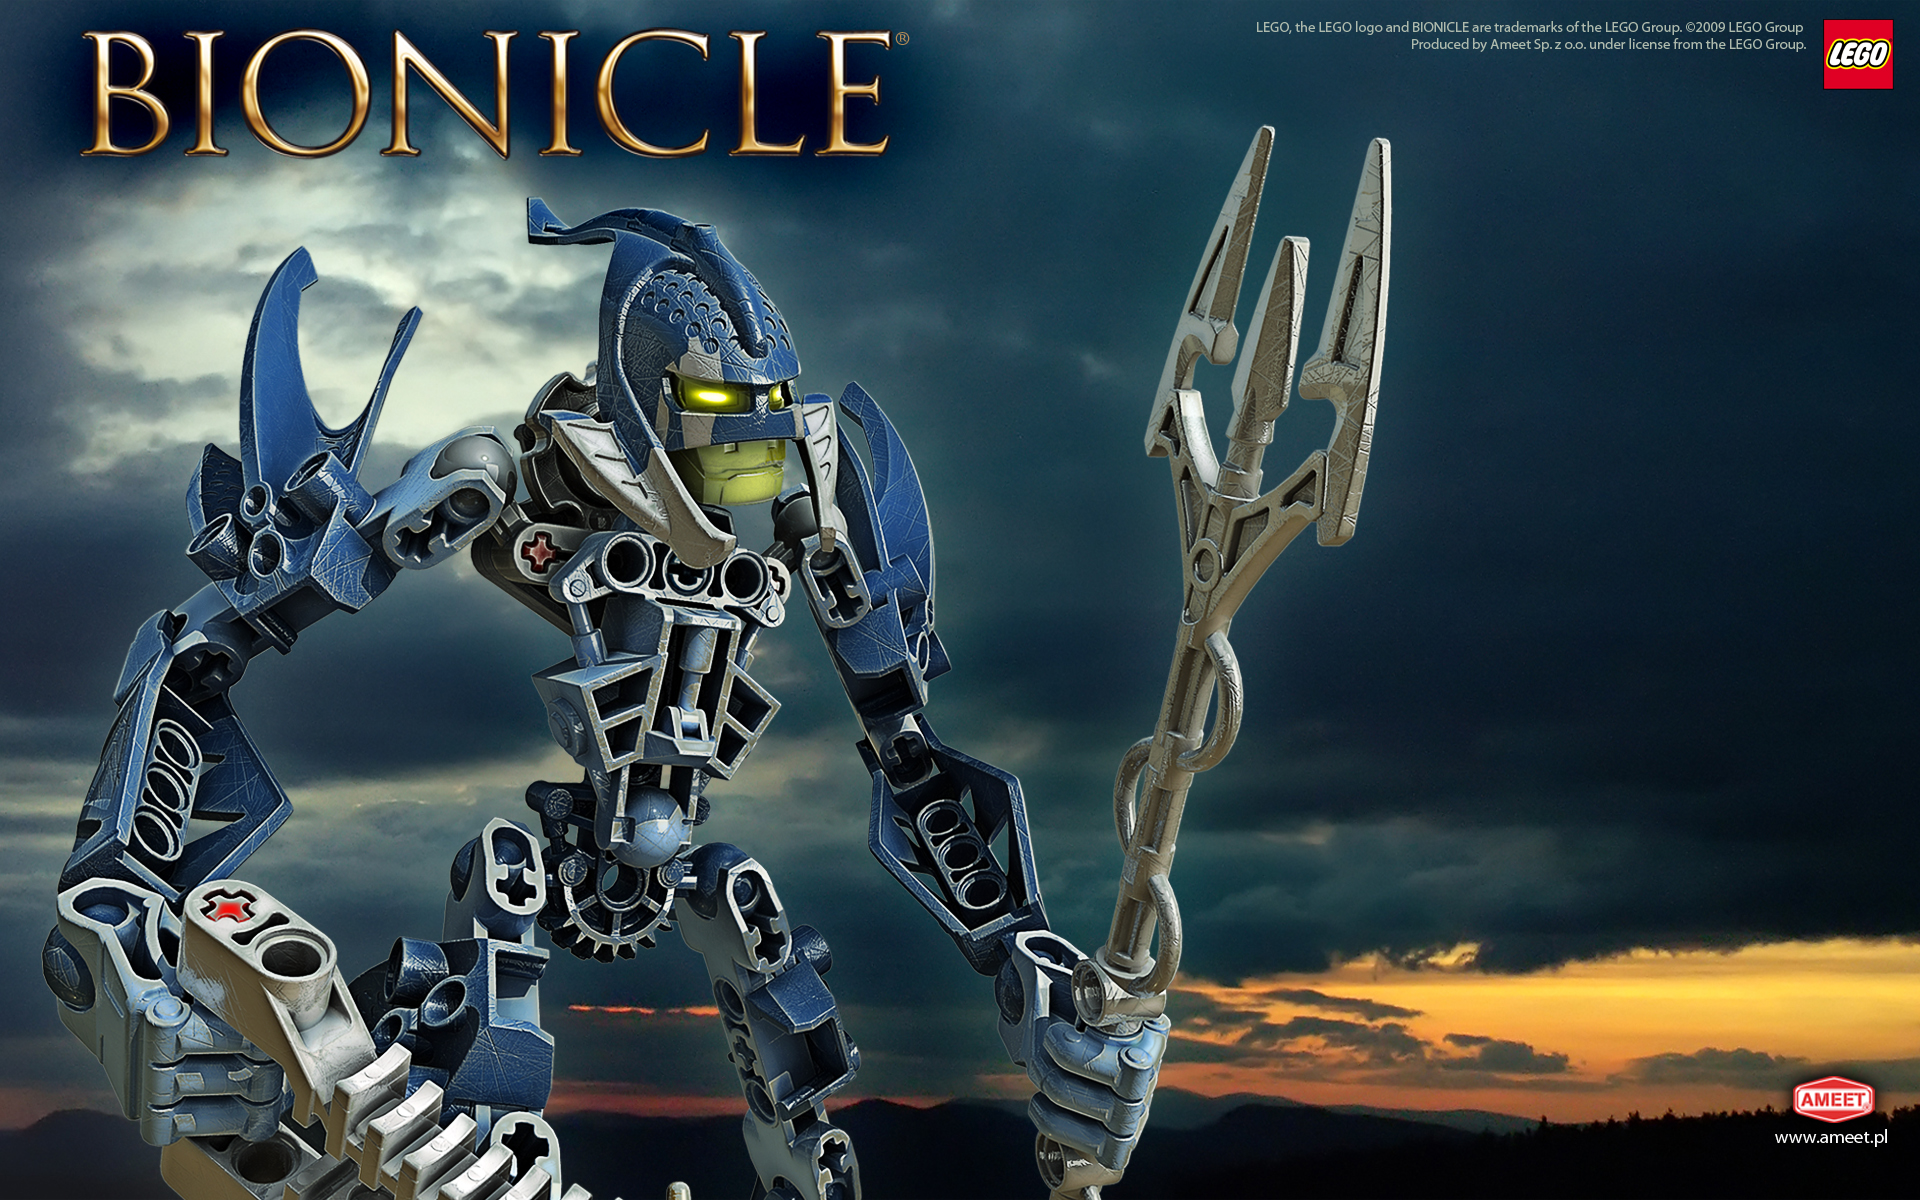 bionicle the legend reborn 2009 dvd new releases